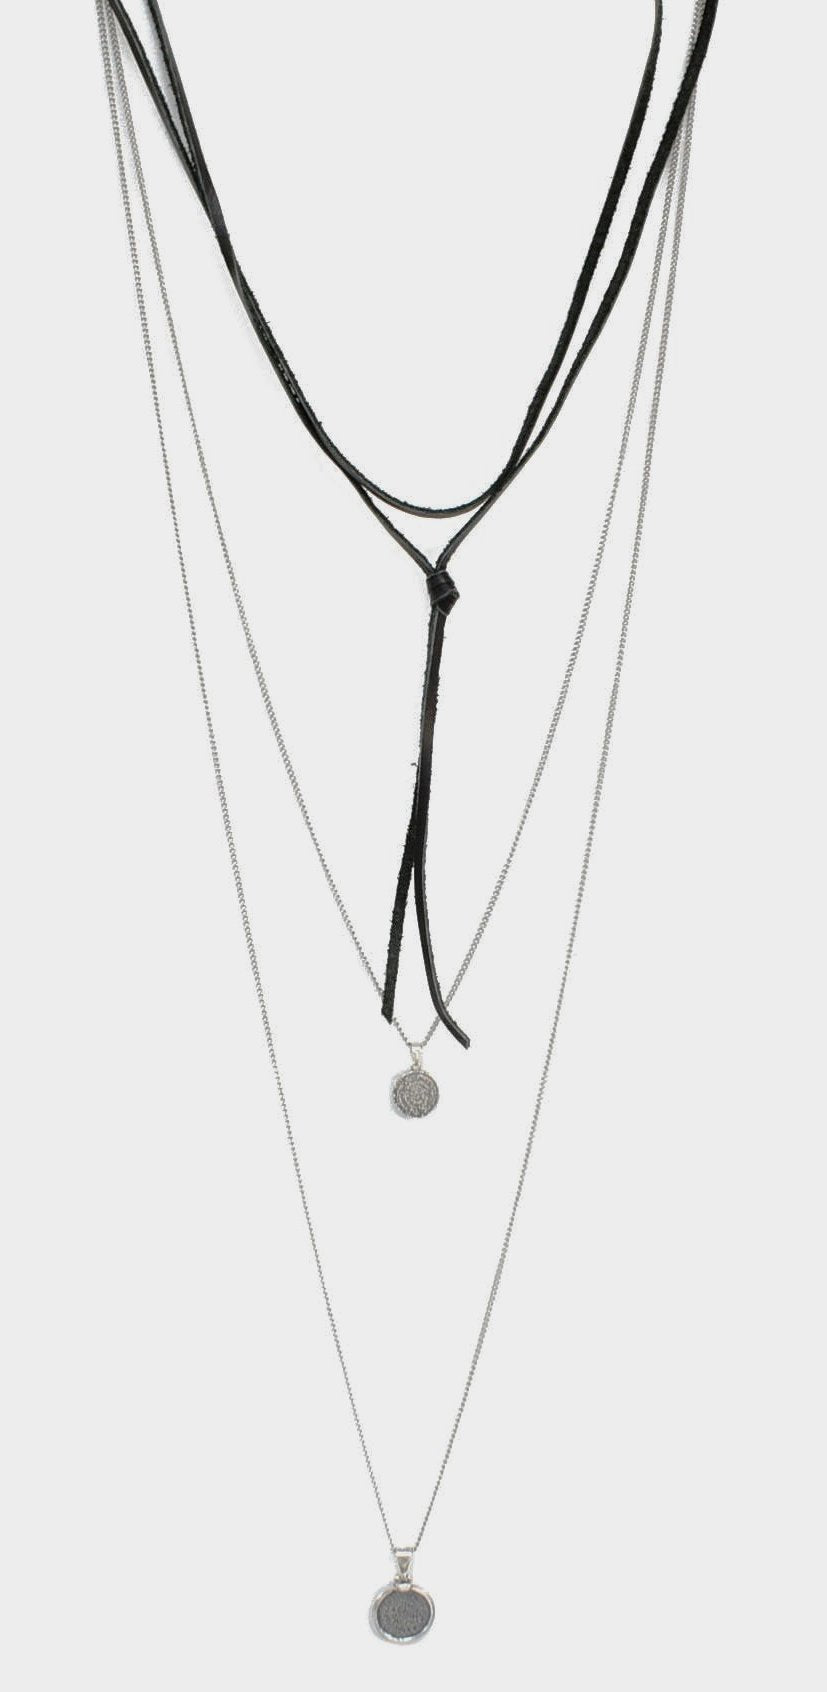 CALYSTO .925 sterling silver/blk leather necklace